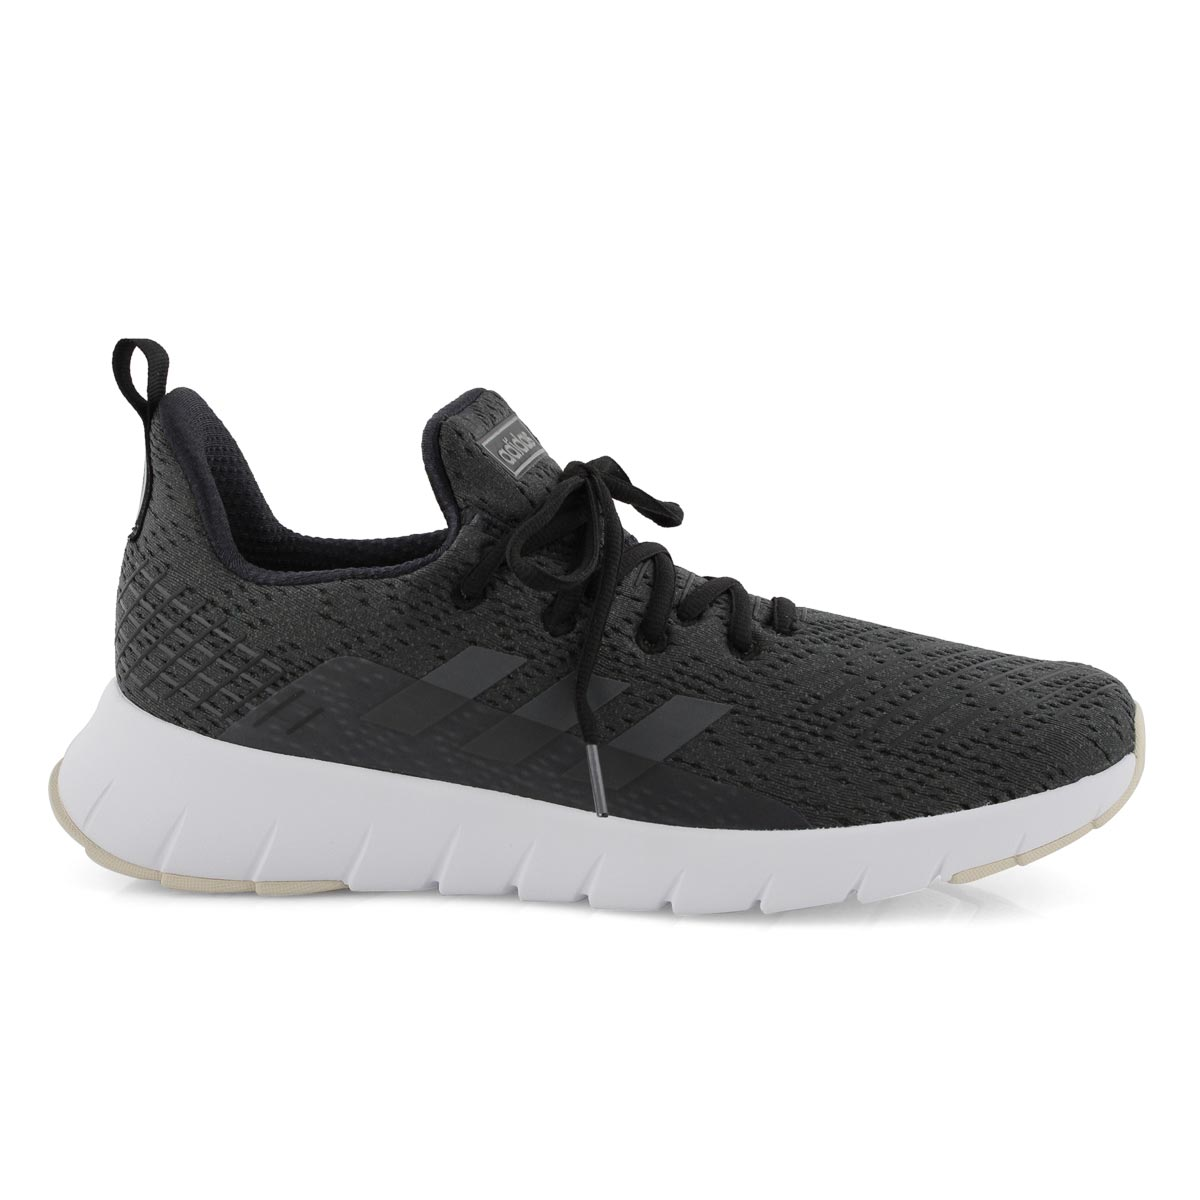 Mns Asweego Run blk/gry running shoe